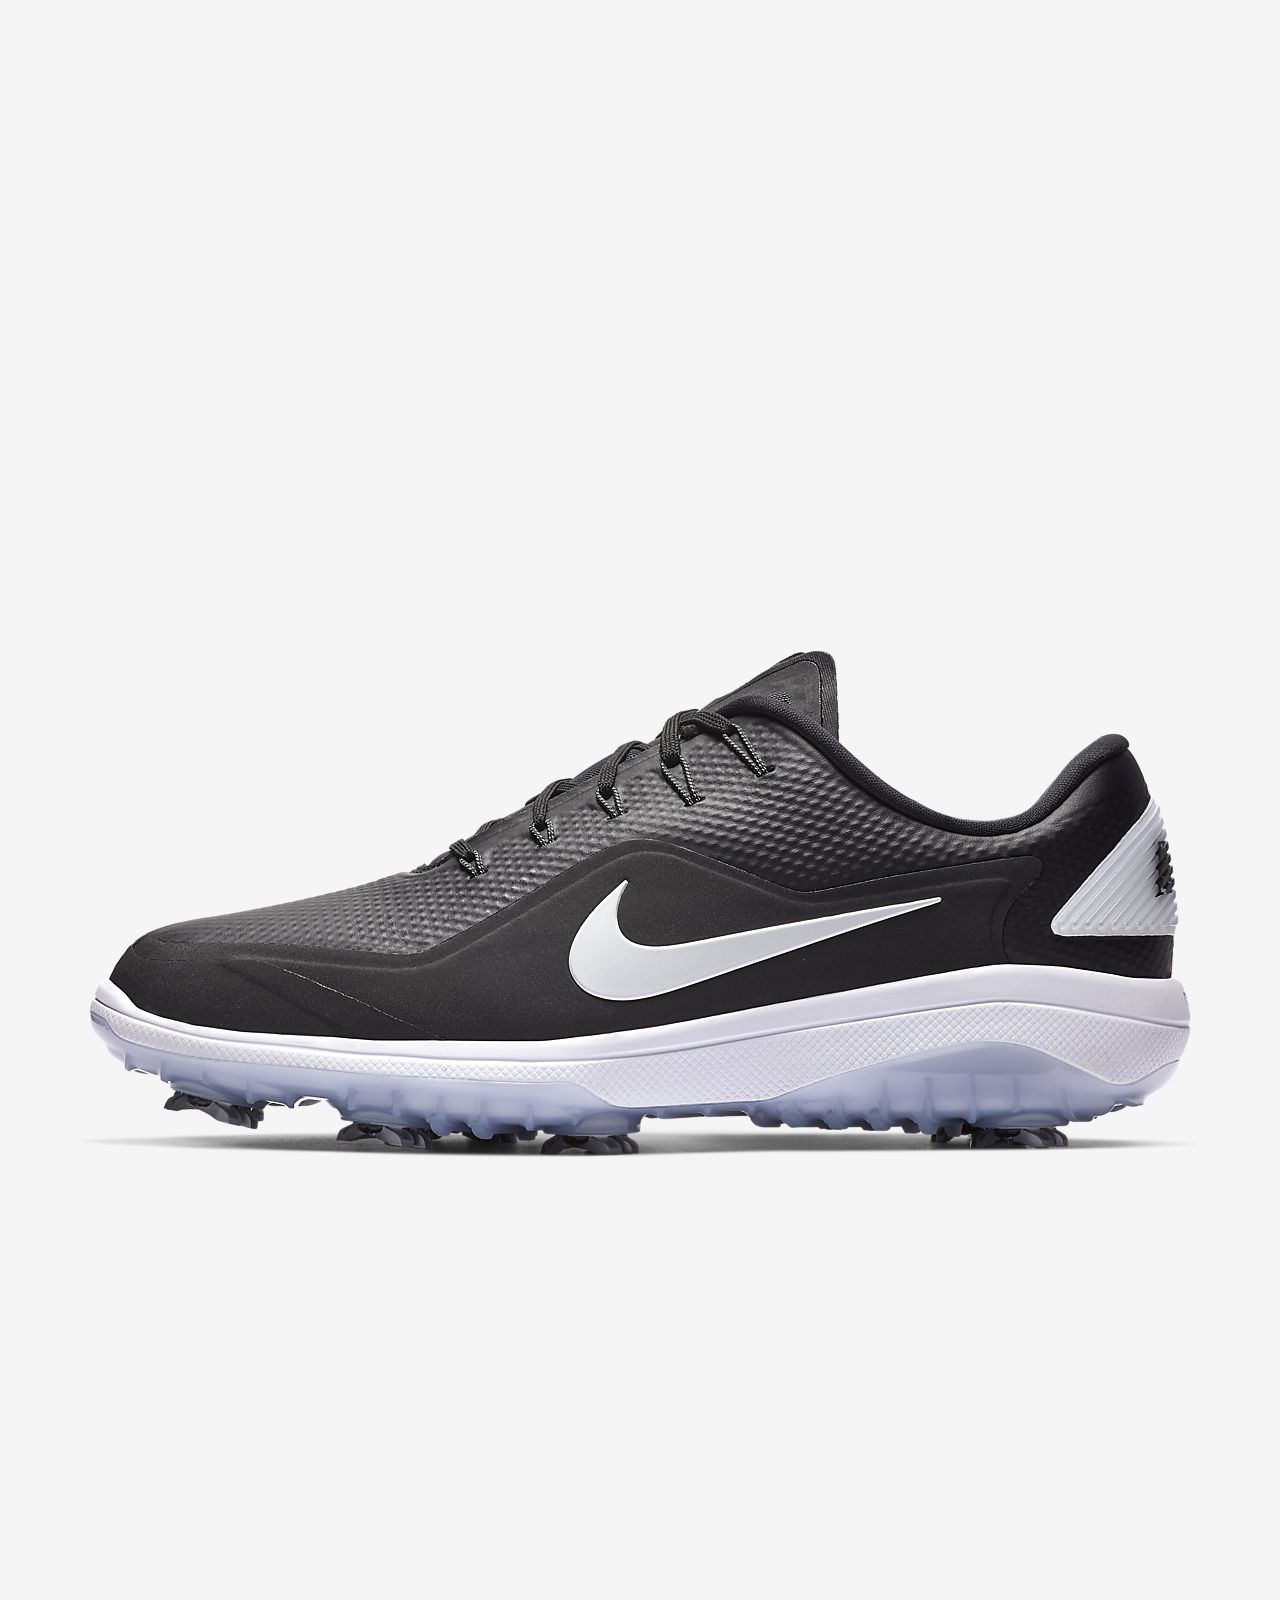 Nike React Vapor 2 Men's Golf Shoe (Wide)